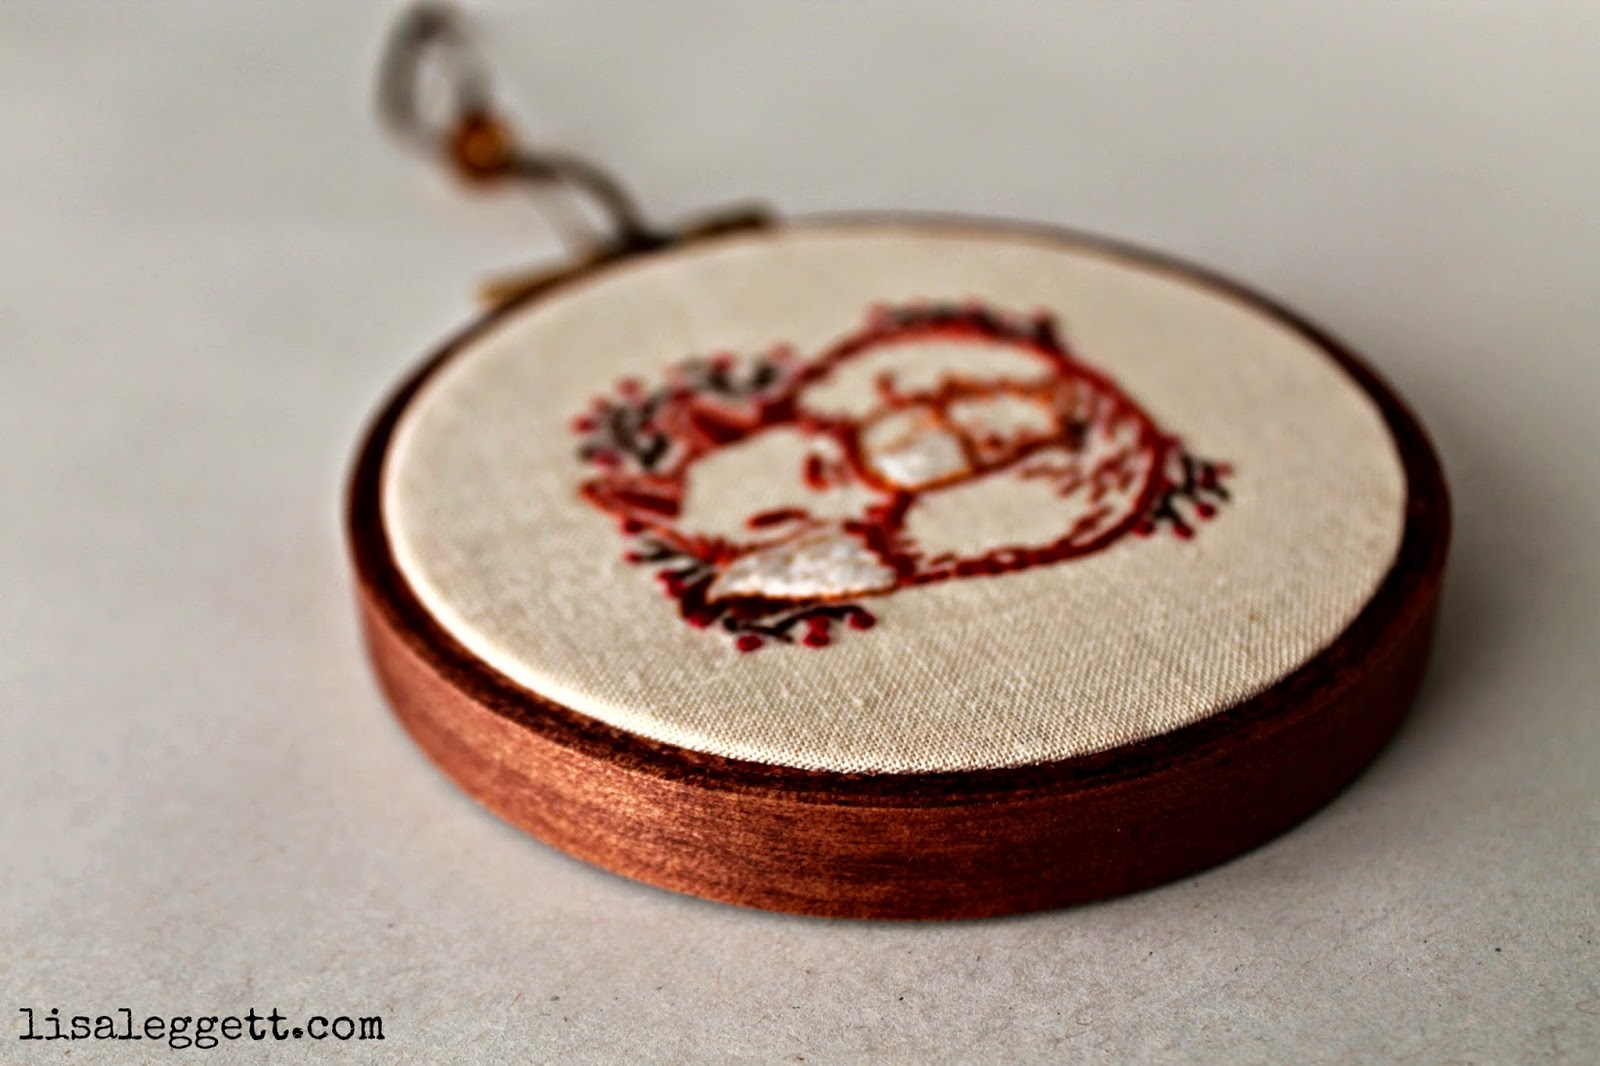 Stained Embroidery Hoop by Lisa Leggett